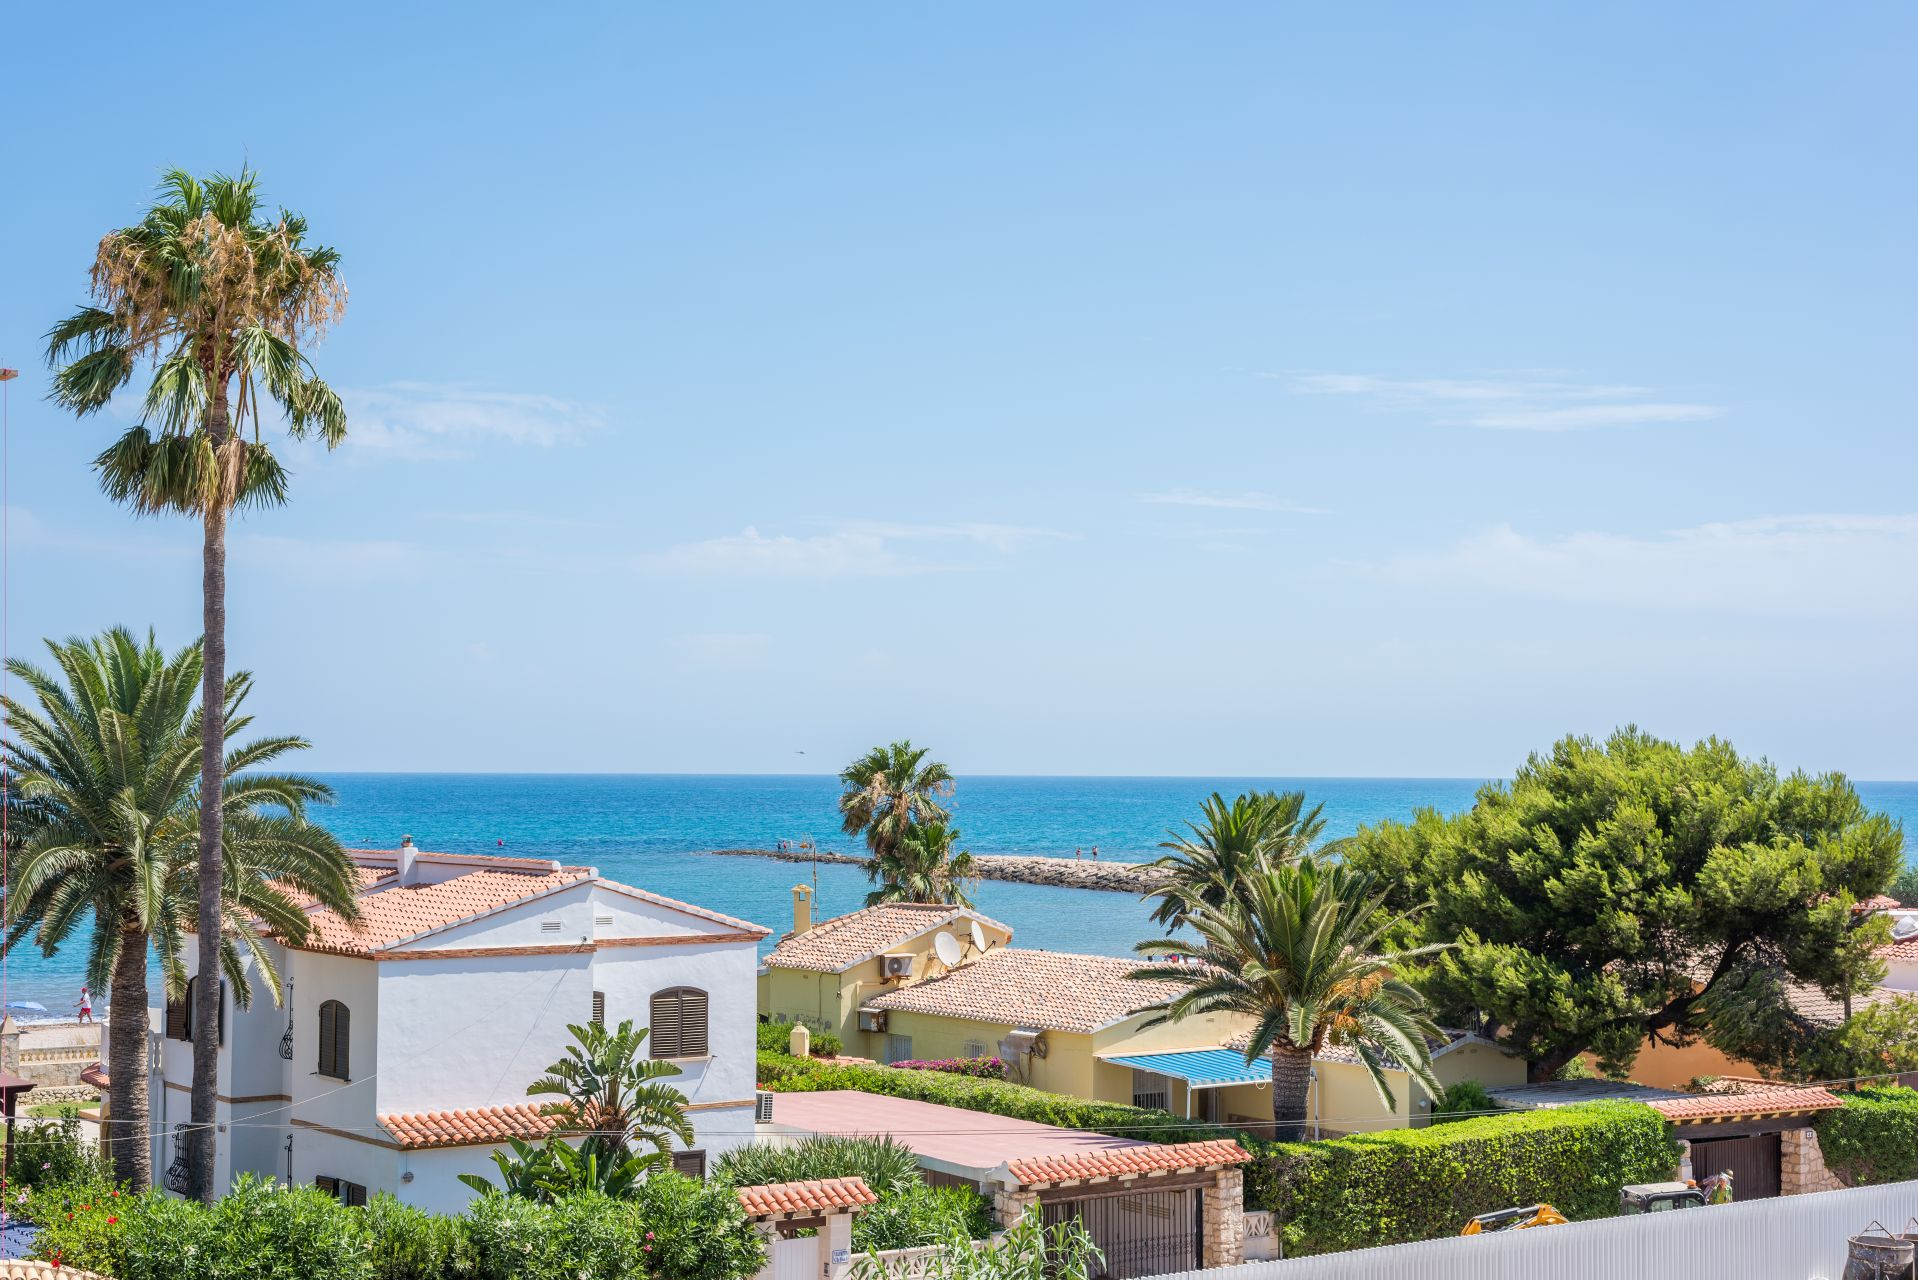 Denia Beach - 1, 2 and 3 bedroom apartments with terrace overlooking the sea or with views over the Montgó mountain, at the beach of La Almadraba beach 36